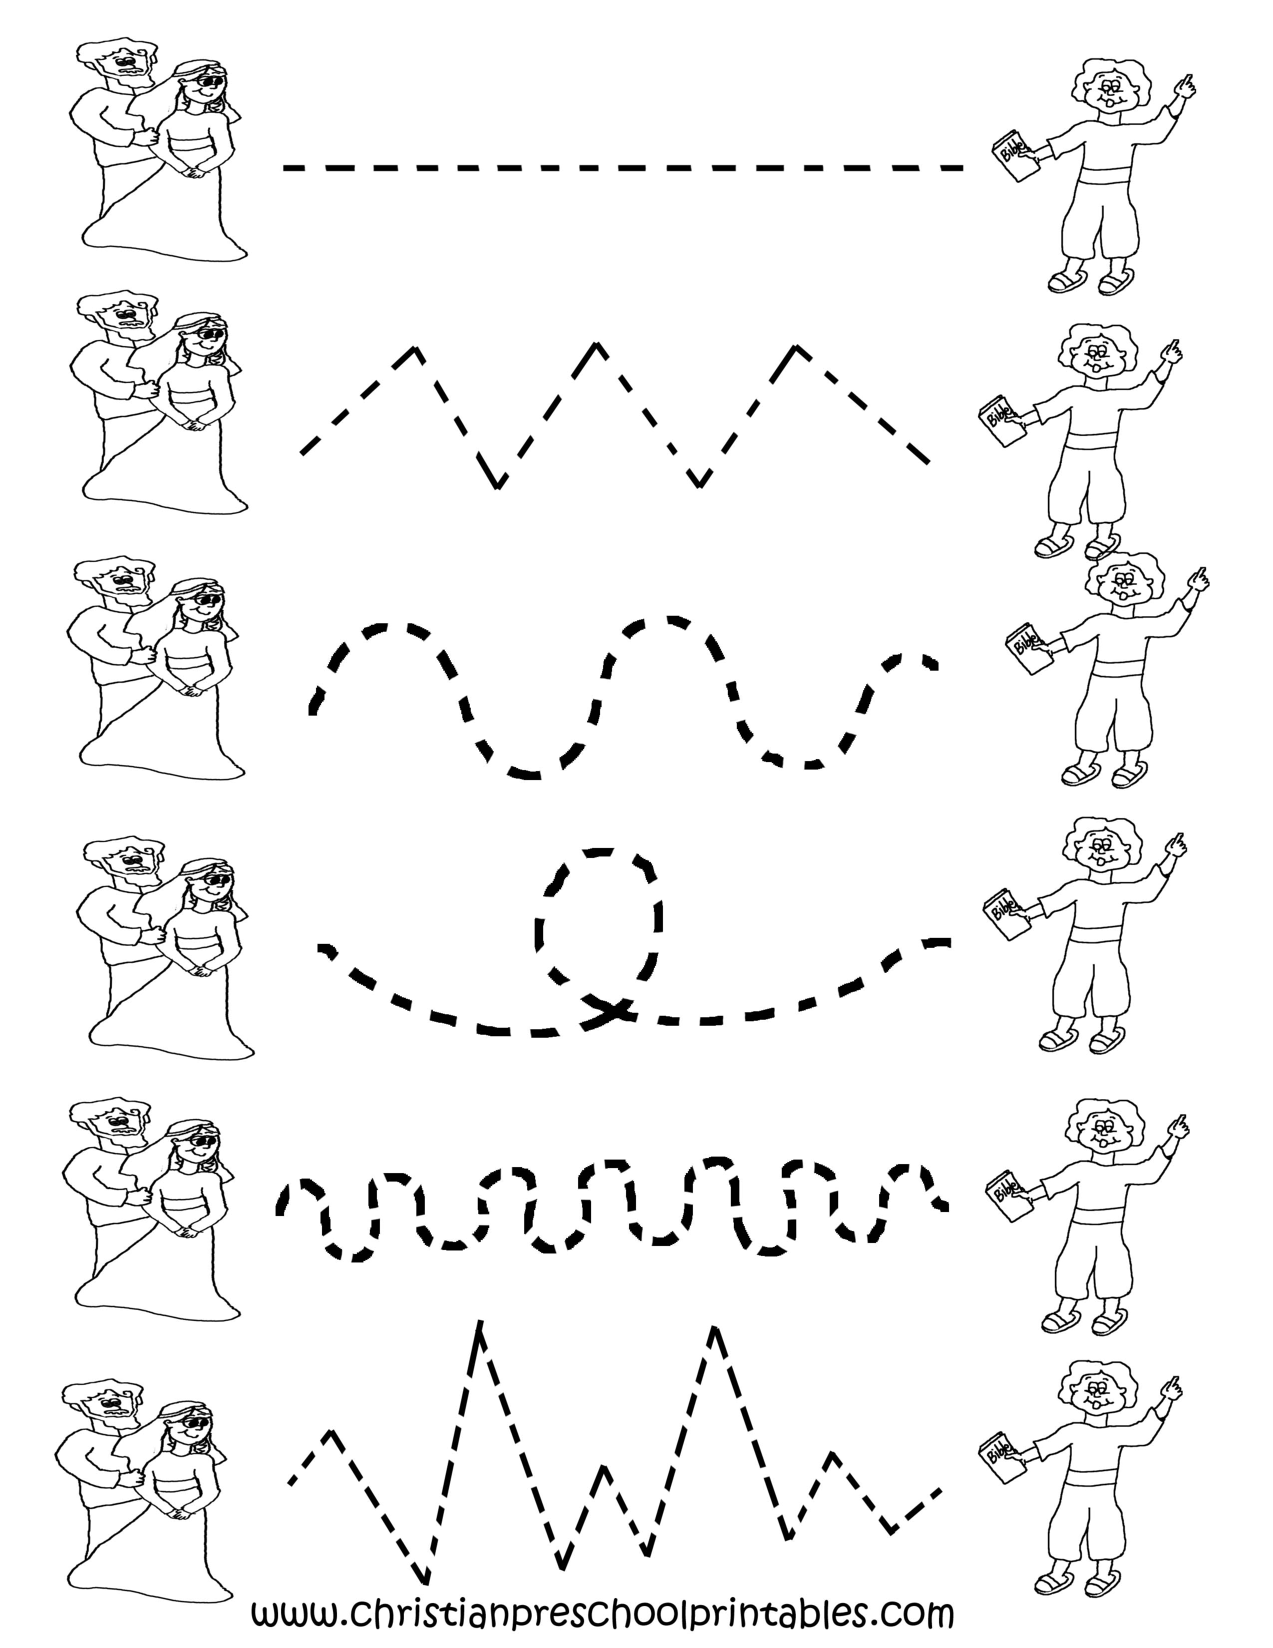 4 Images of Printable Tracing Pages For Toddlers